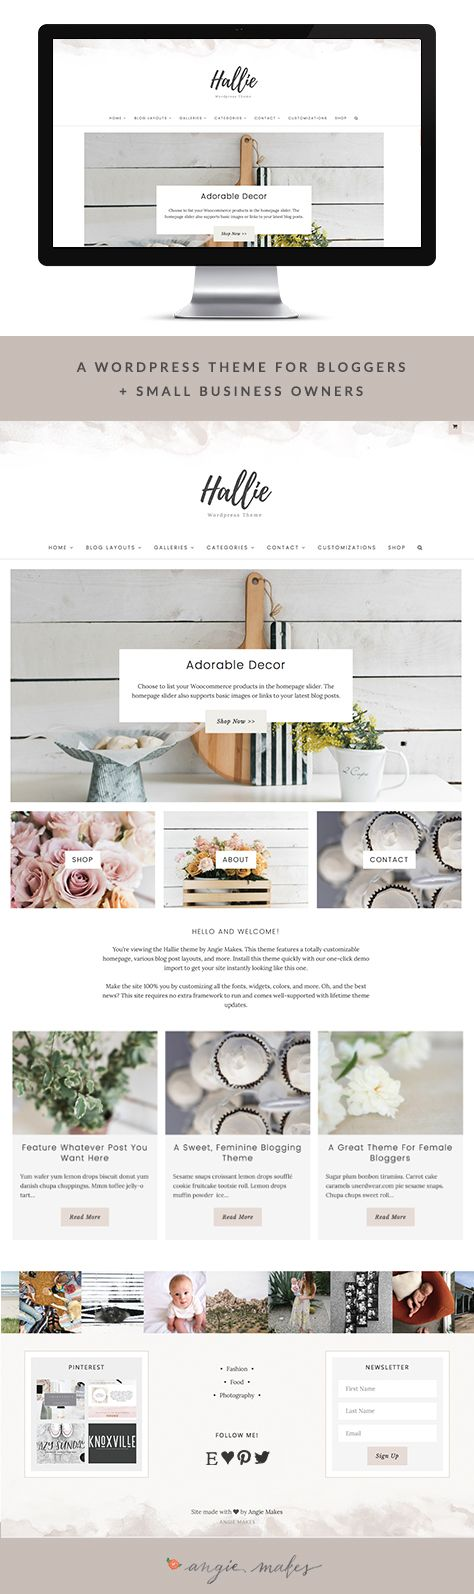 The Hallie Feminine Wordpress Theme by Angie Makes features a calming, neutral color palette, subtle watercolor elements, and tons of great features. This web design Wordpress theme is perfect for bloggers + small Business owners.